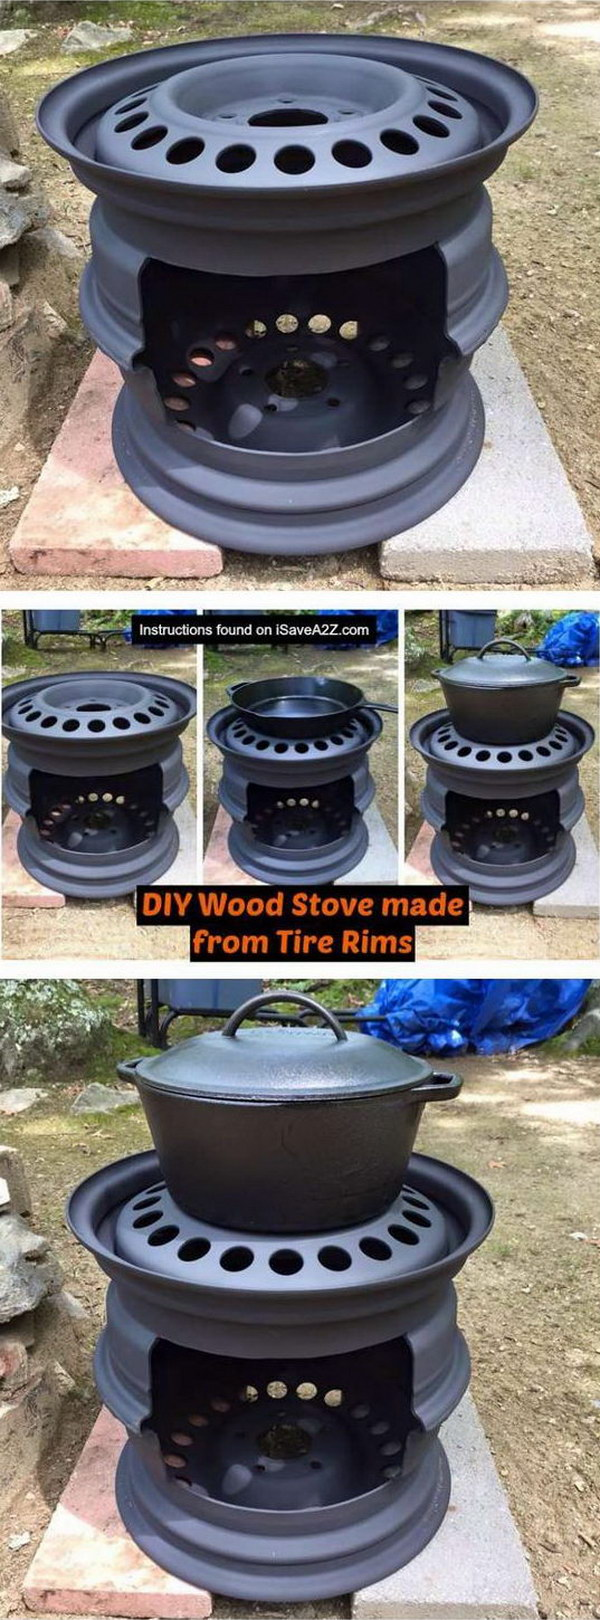 DIY Wood Stove Made From Tire Rims.